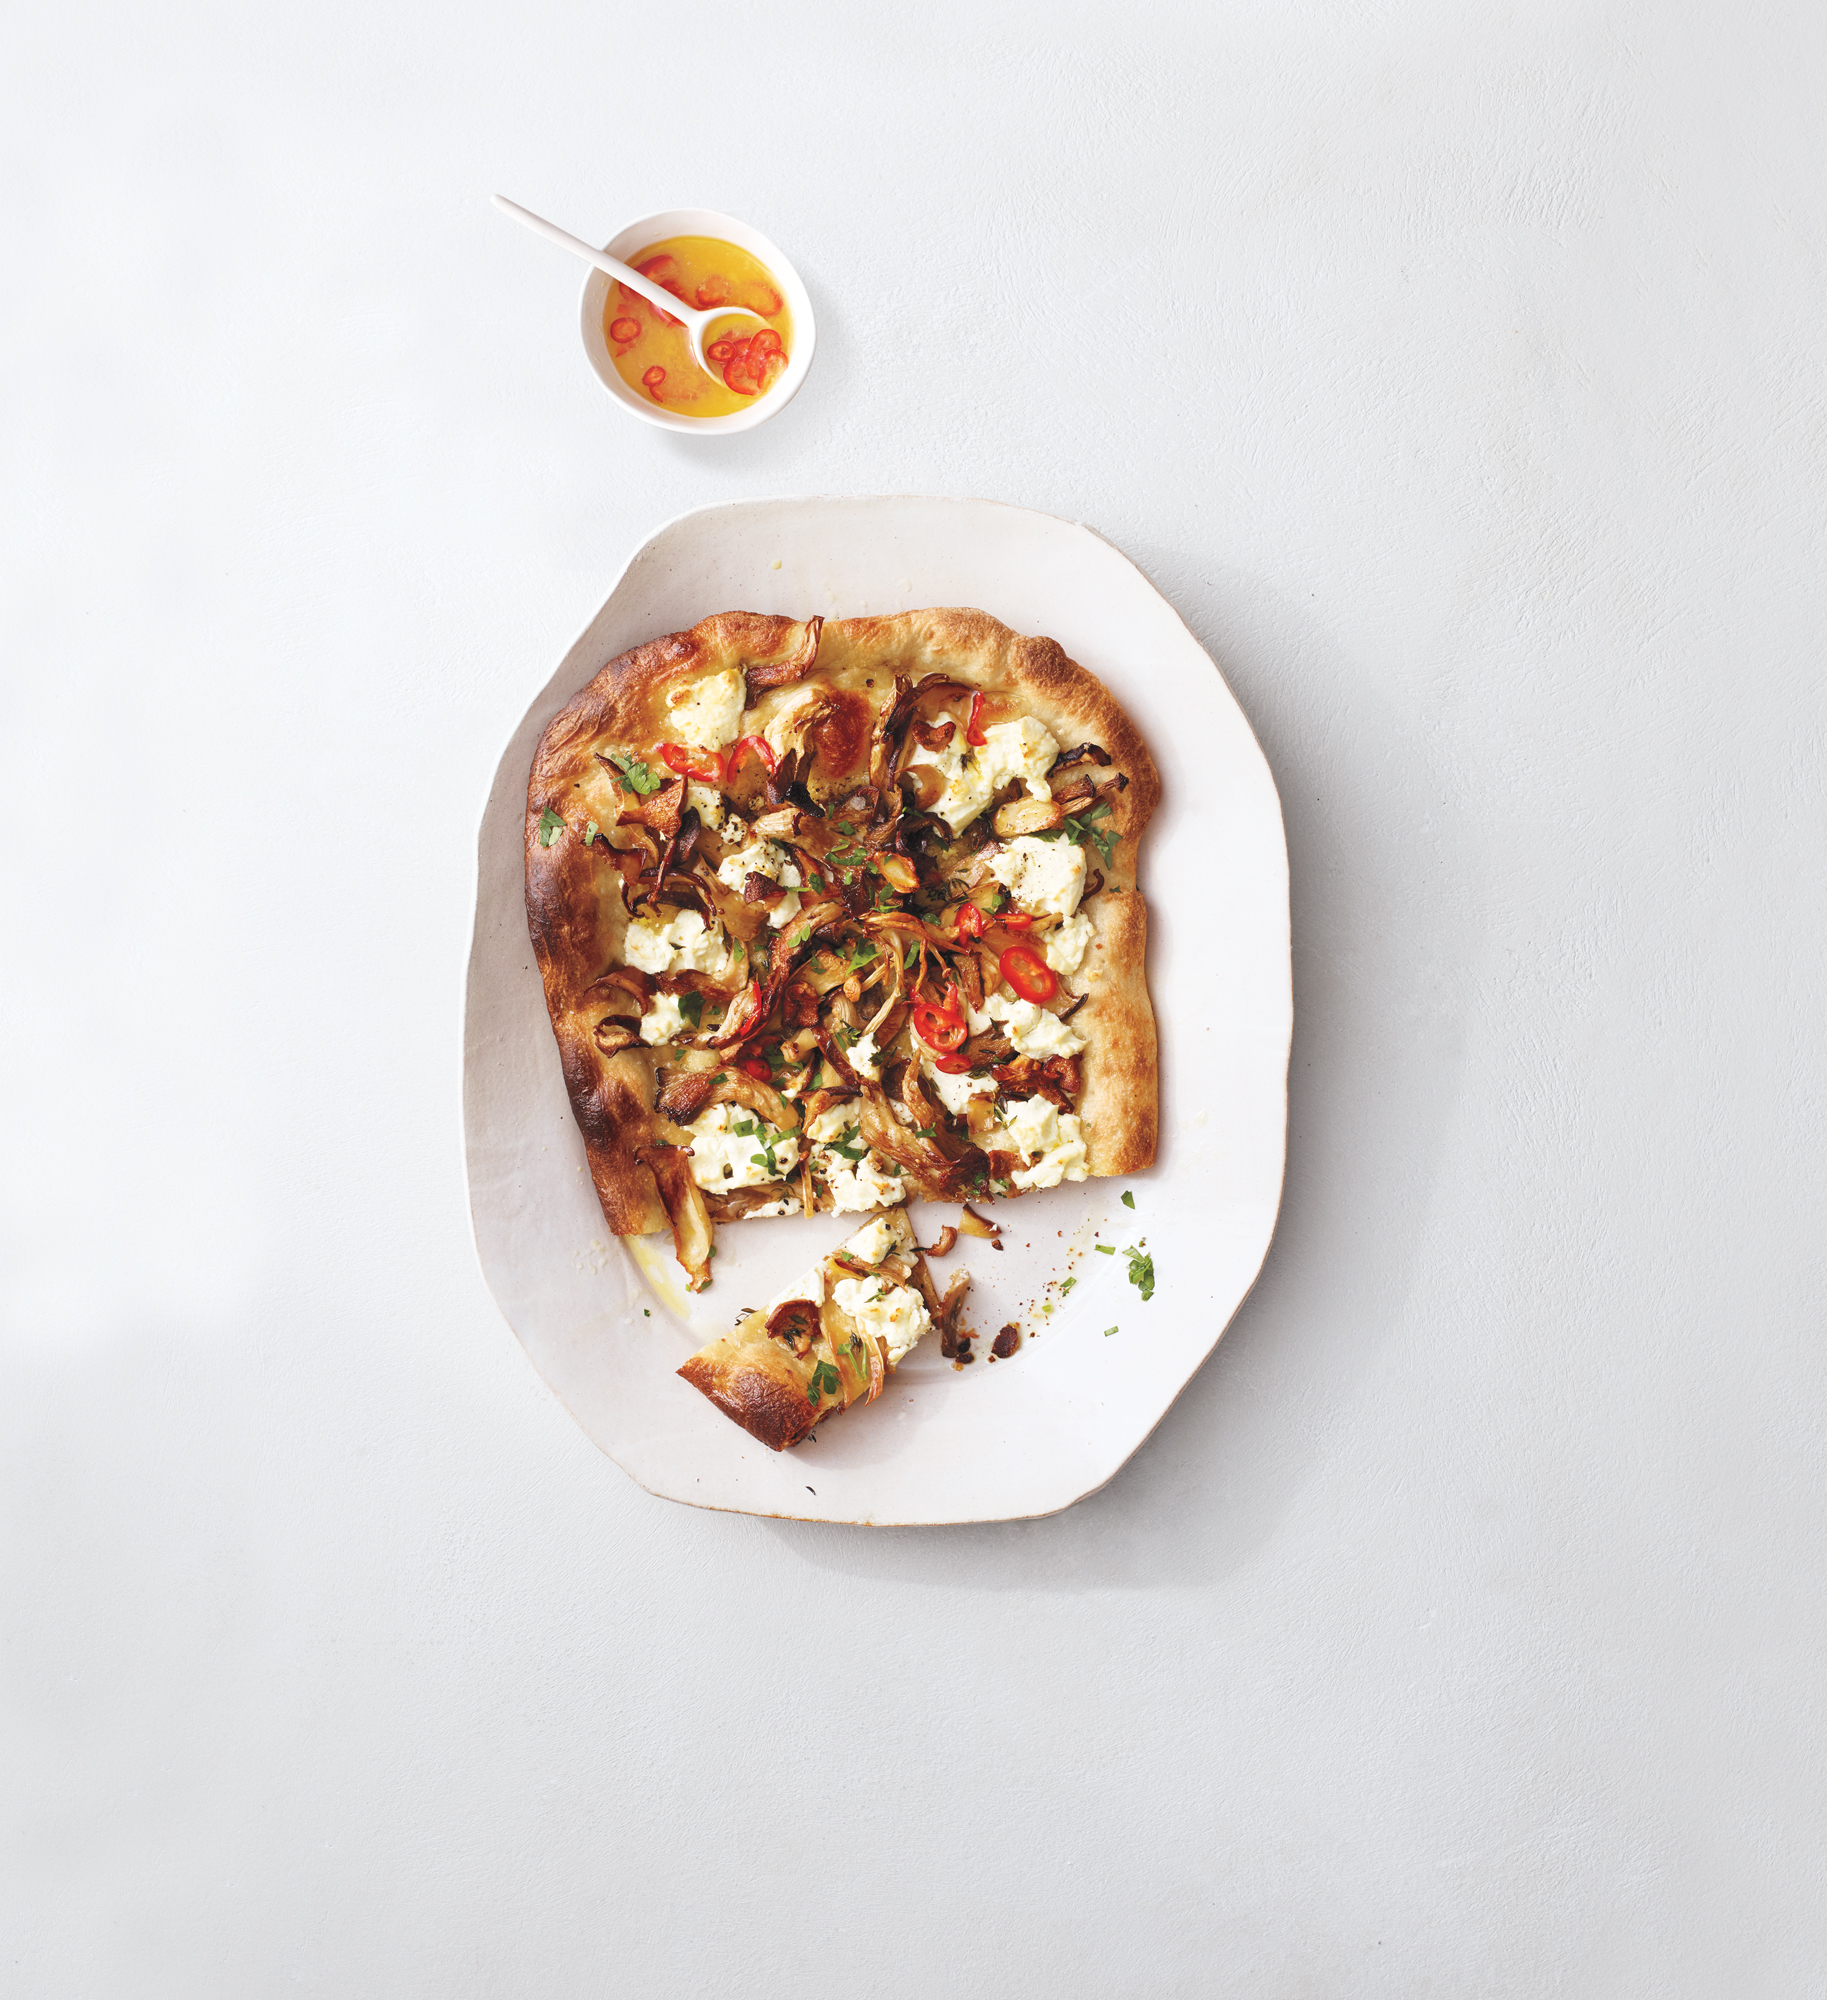 Mushroom and Goat Cheese Pizza